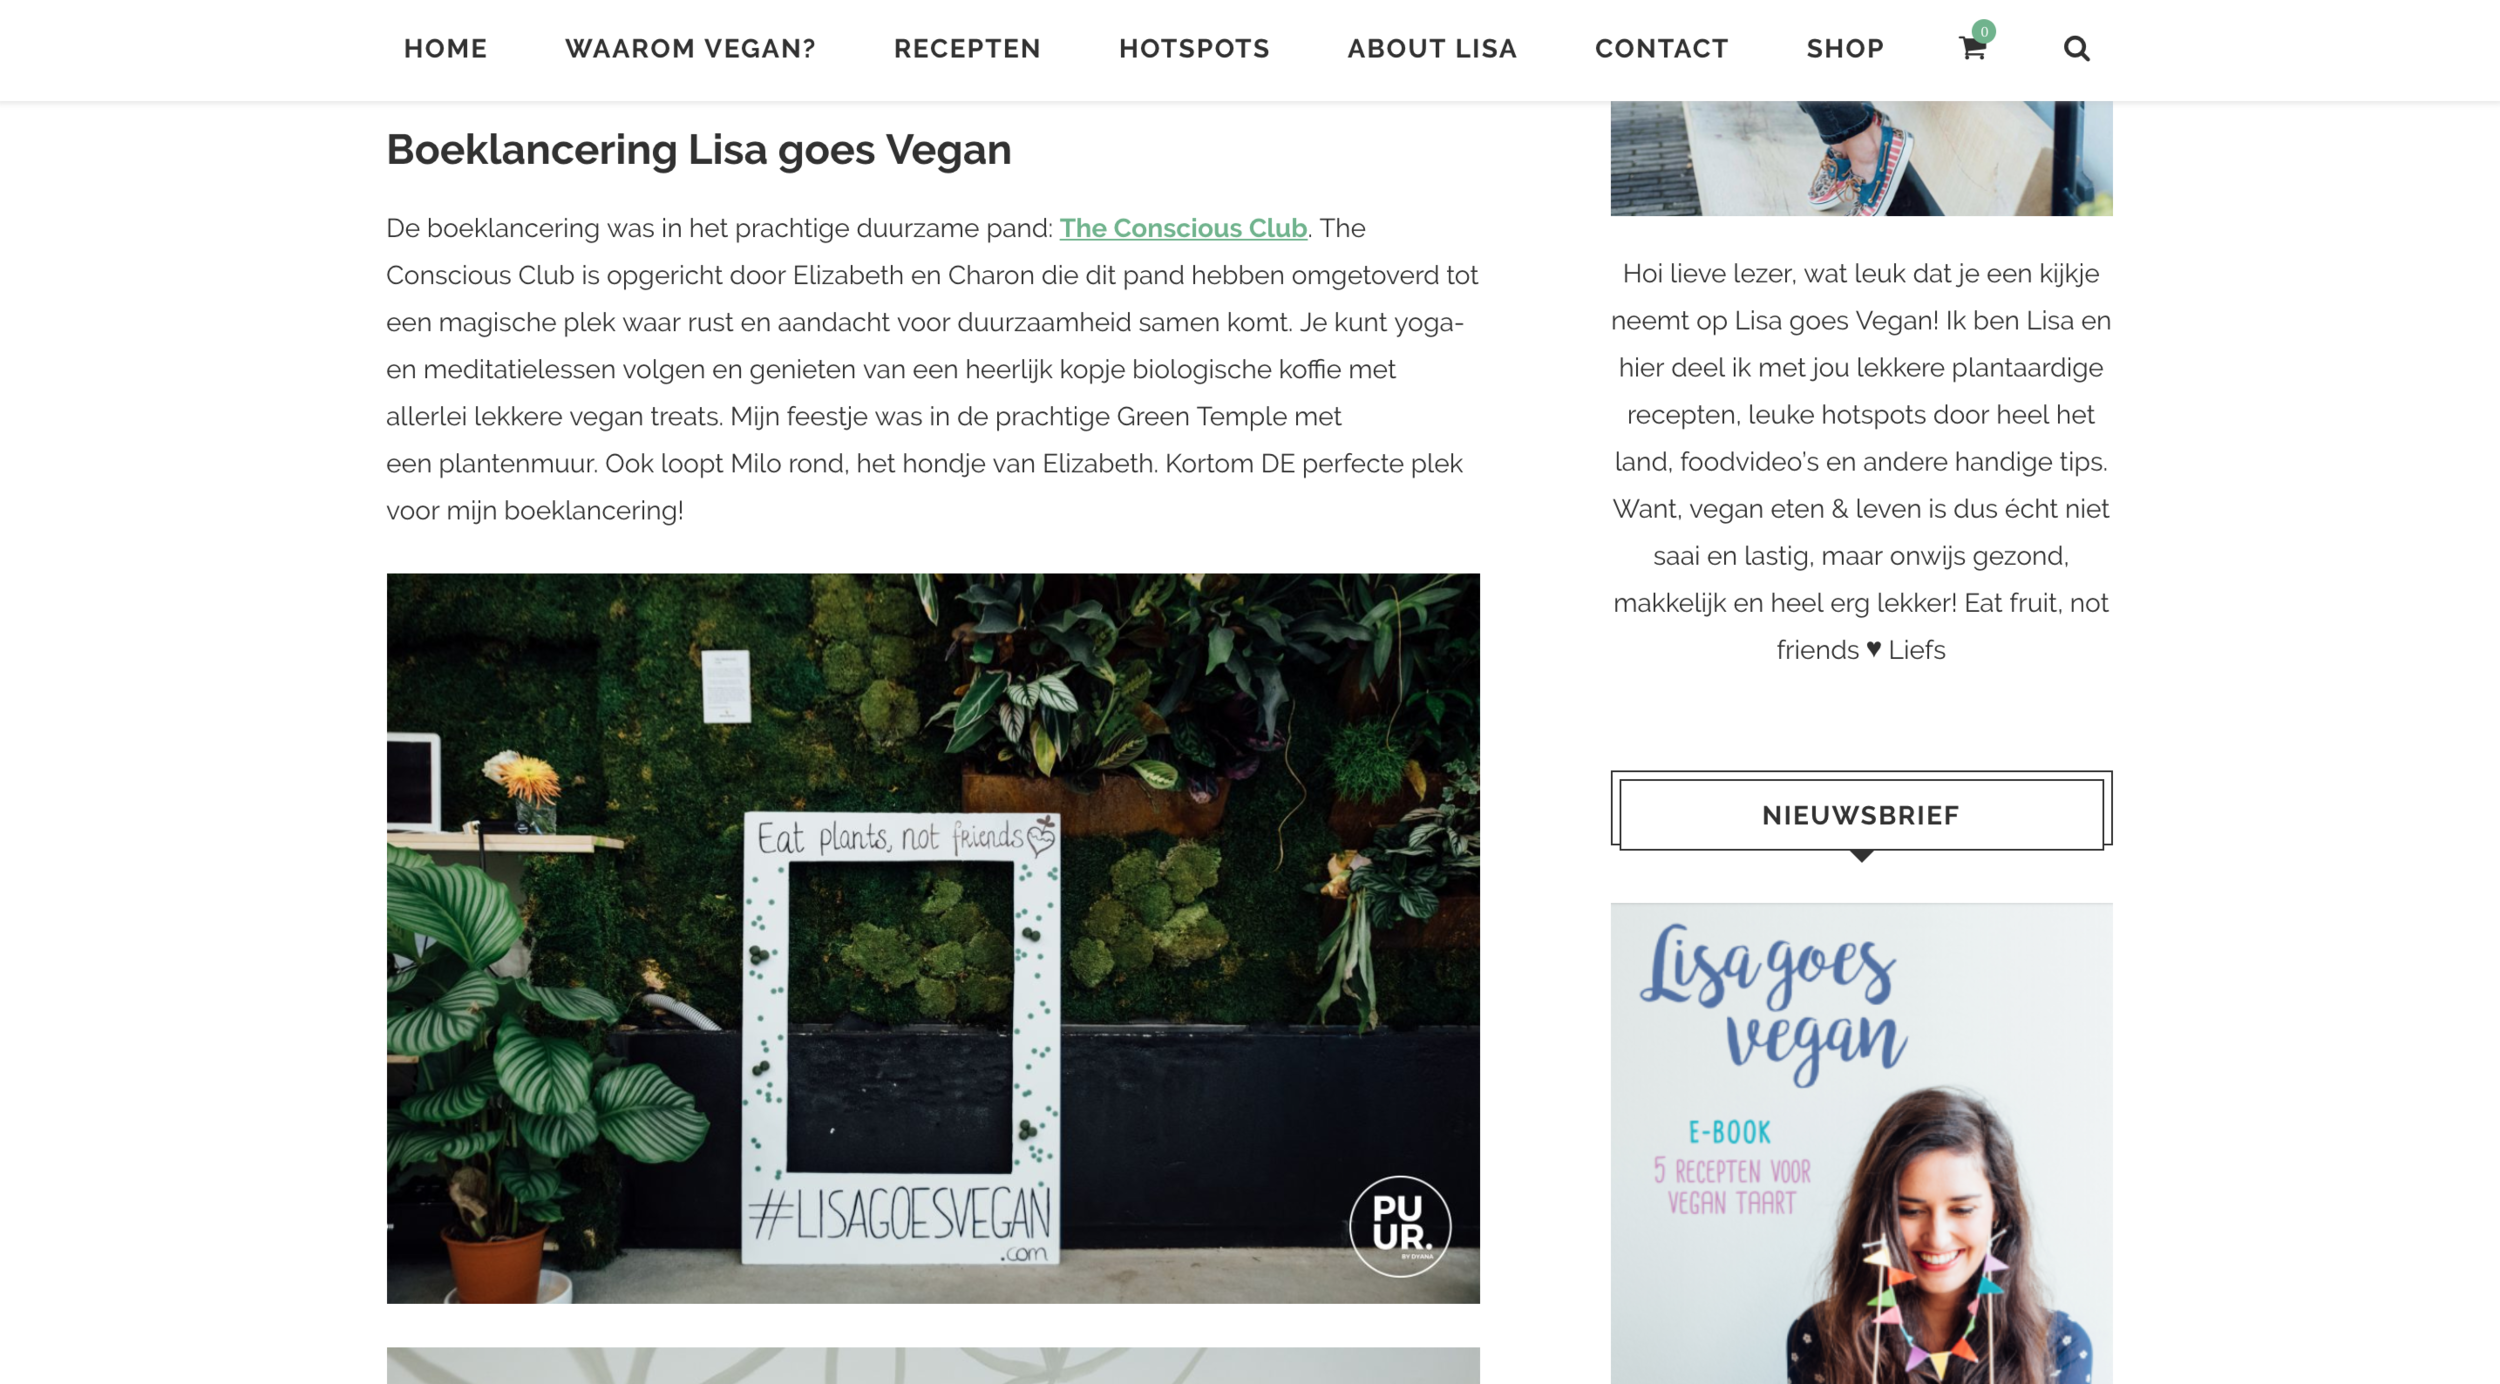 https://lisagoesvegan.com/boeklancering-lisa-goes-vegan/